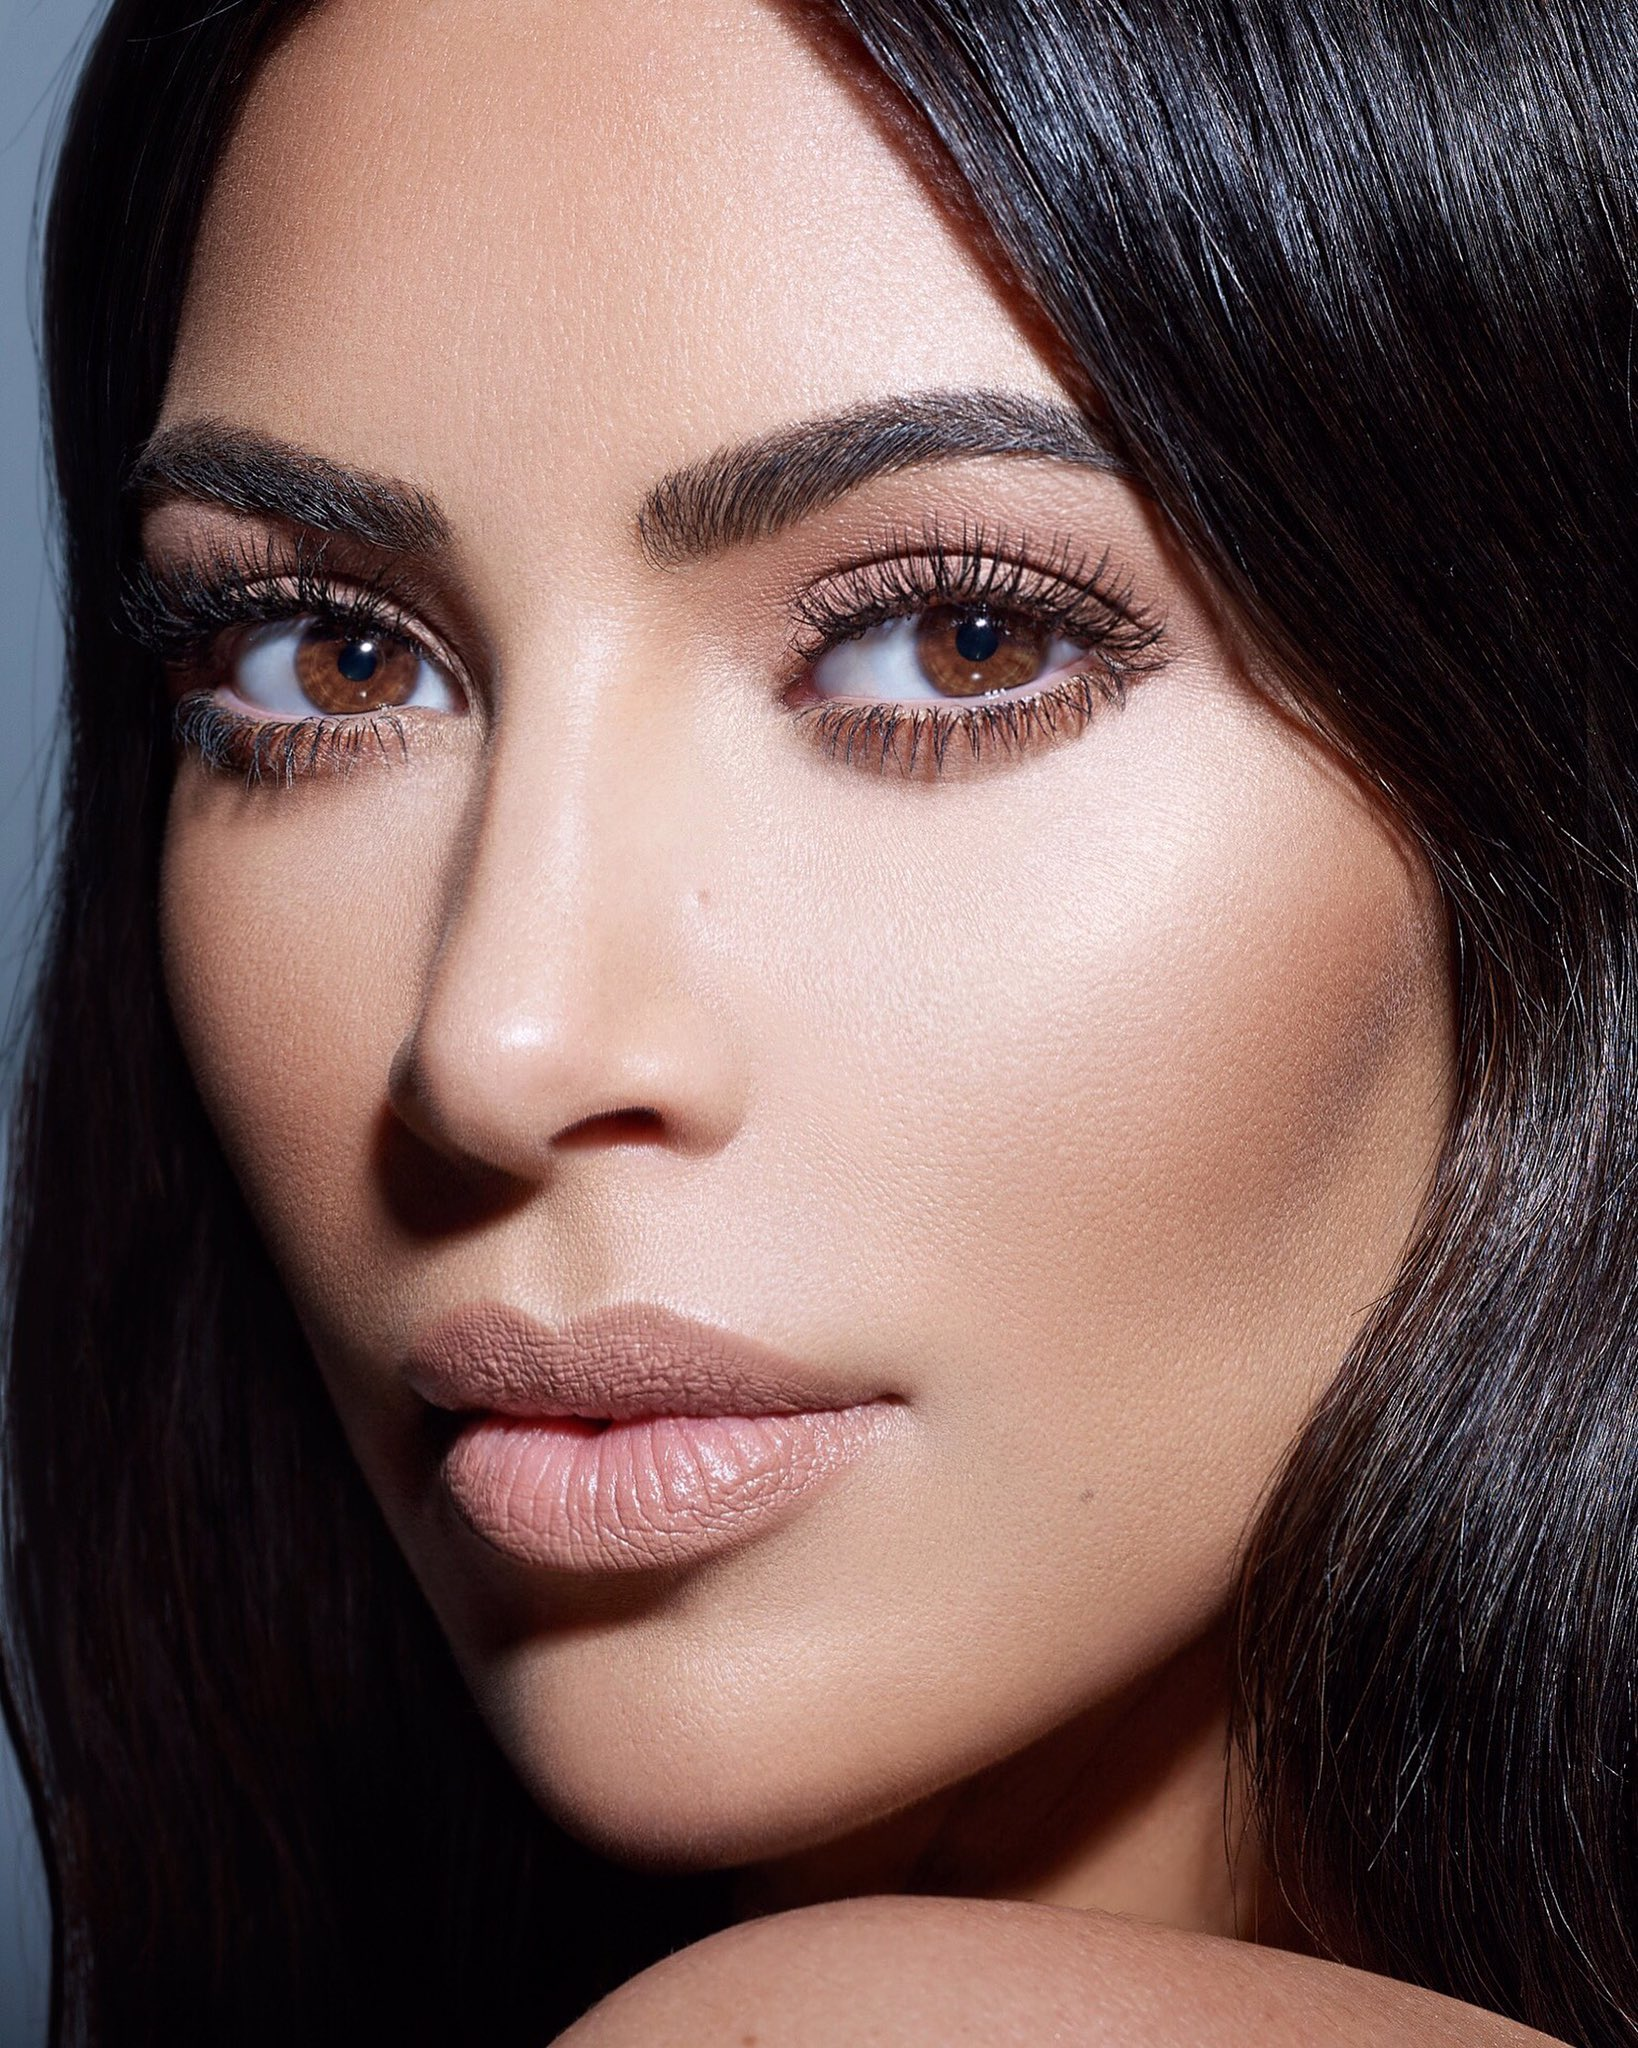 KKW Beauty Powder Contour & Highlight shoot shot by @gavinoneillphoto https://t.co/g0oqFaMn29